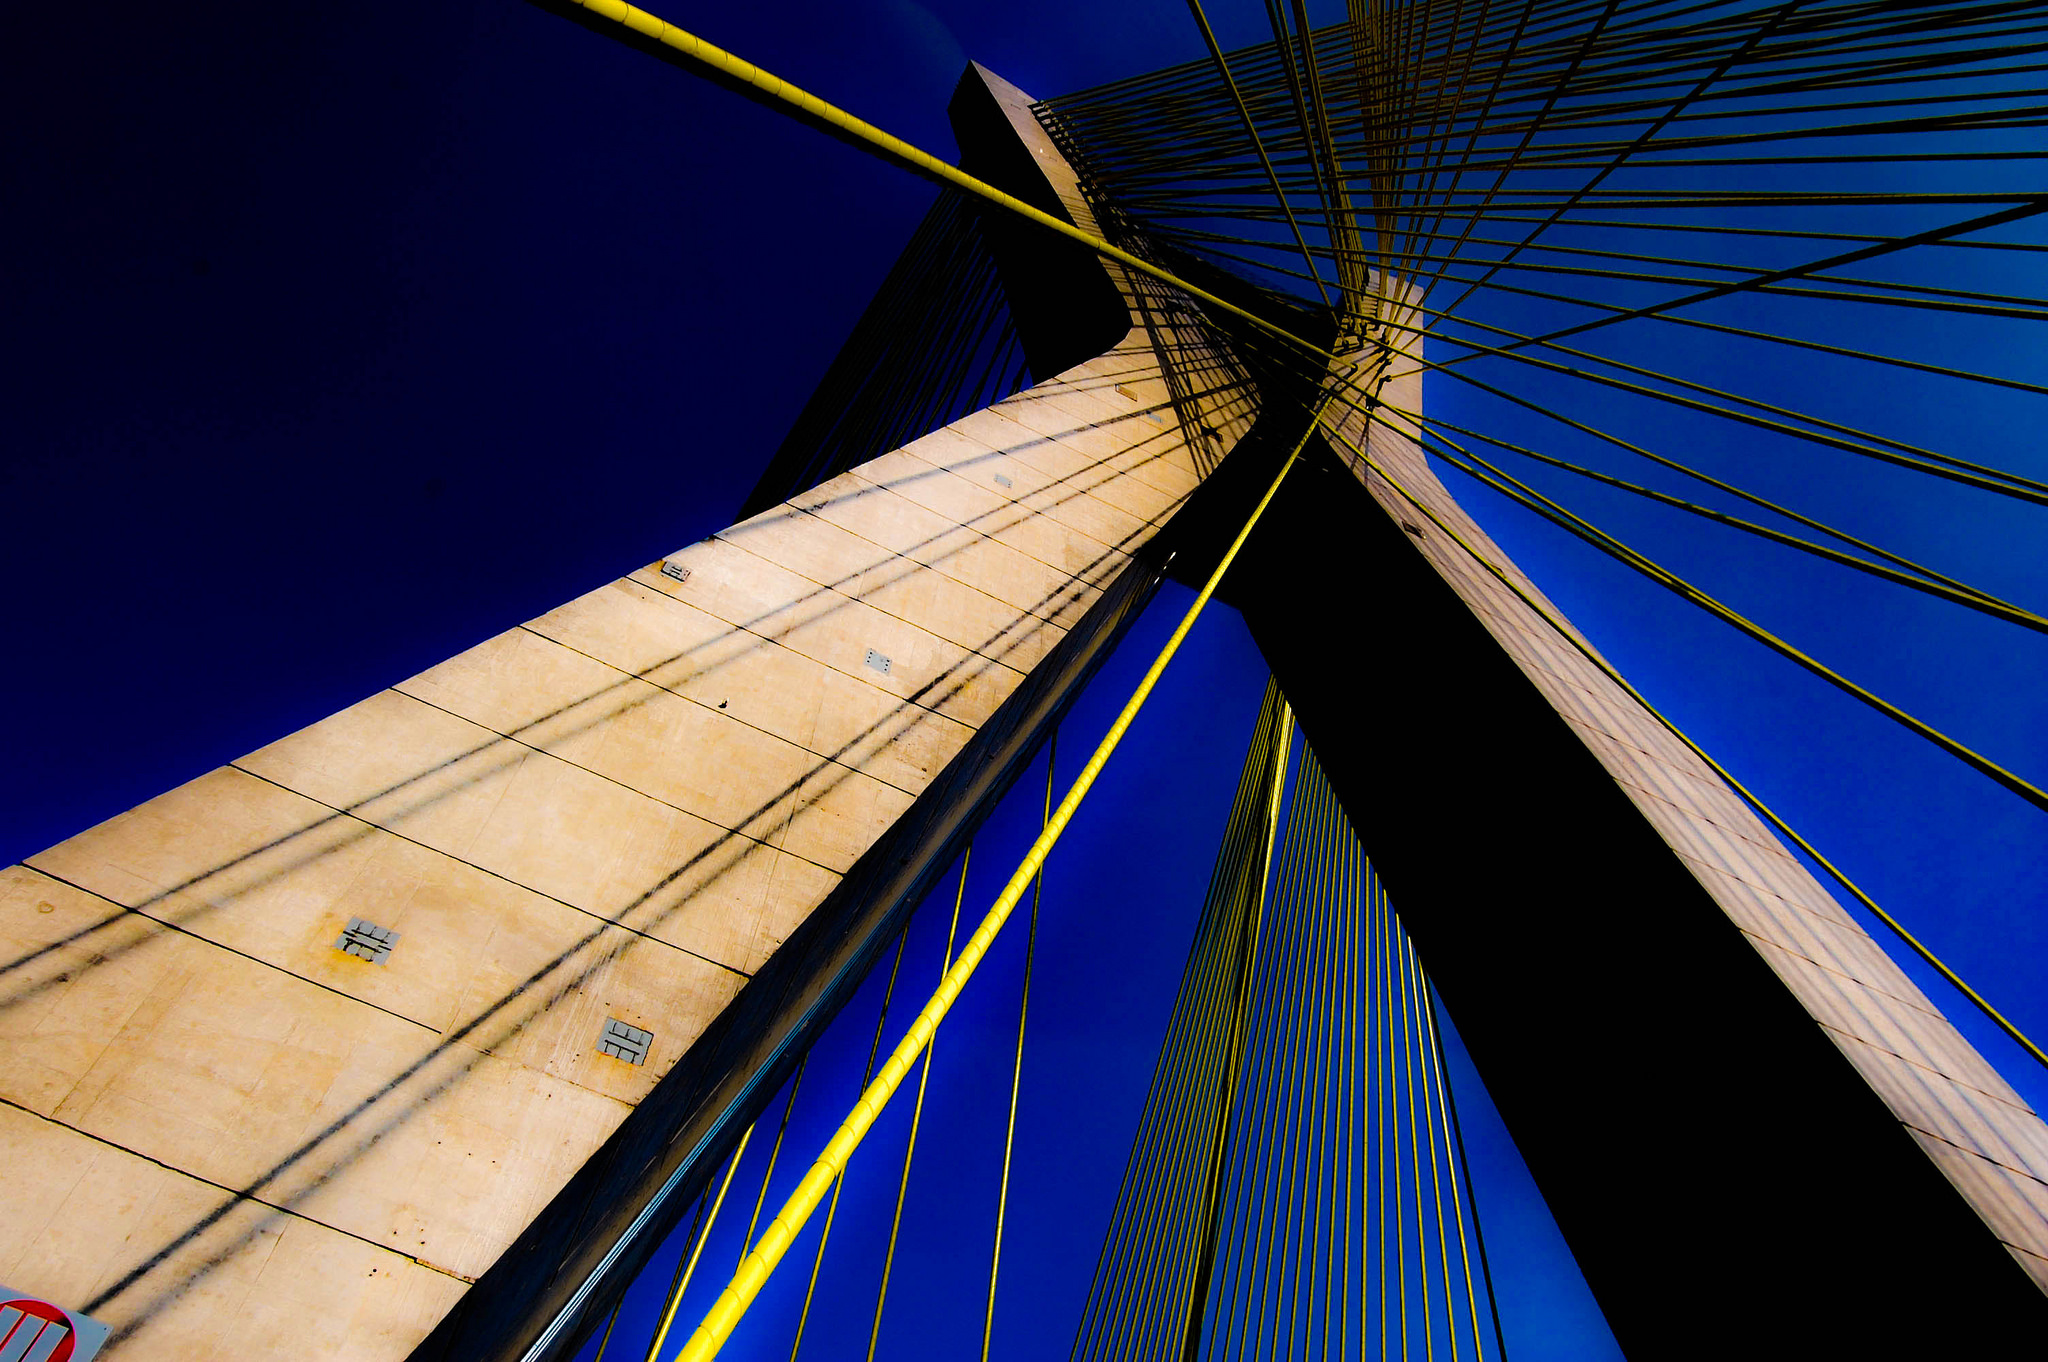 Impressive shot of a bridge, from ground level. Signifying the importance of credentialing.